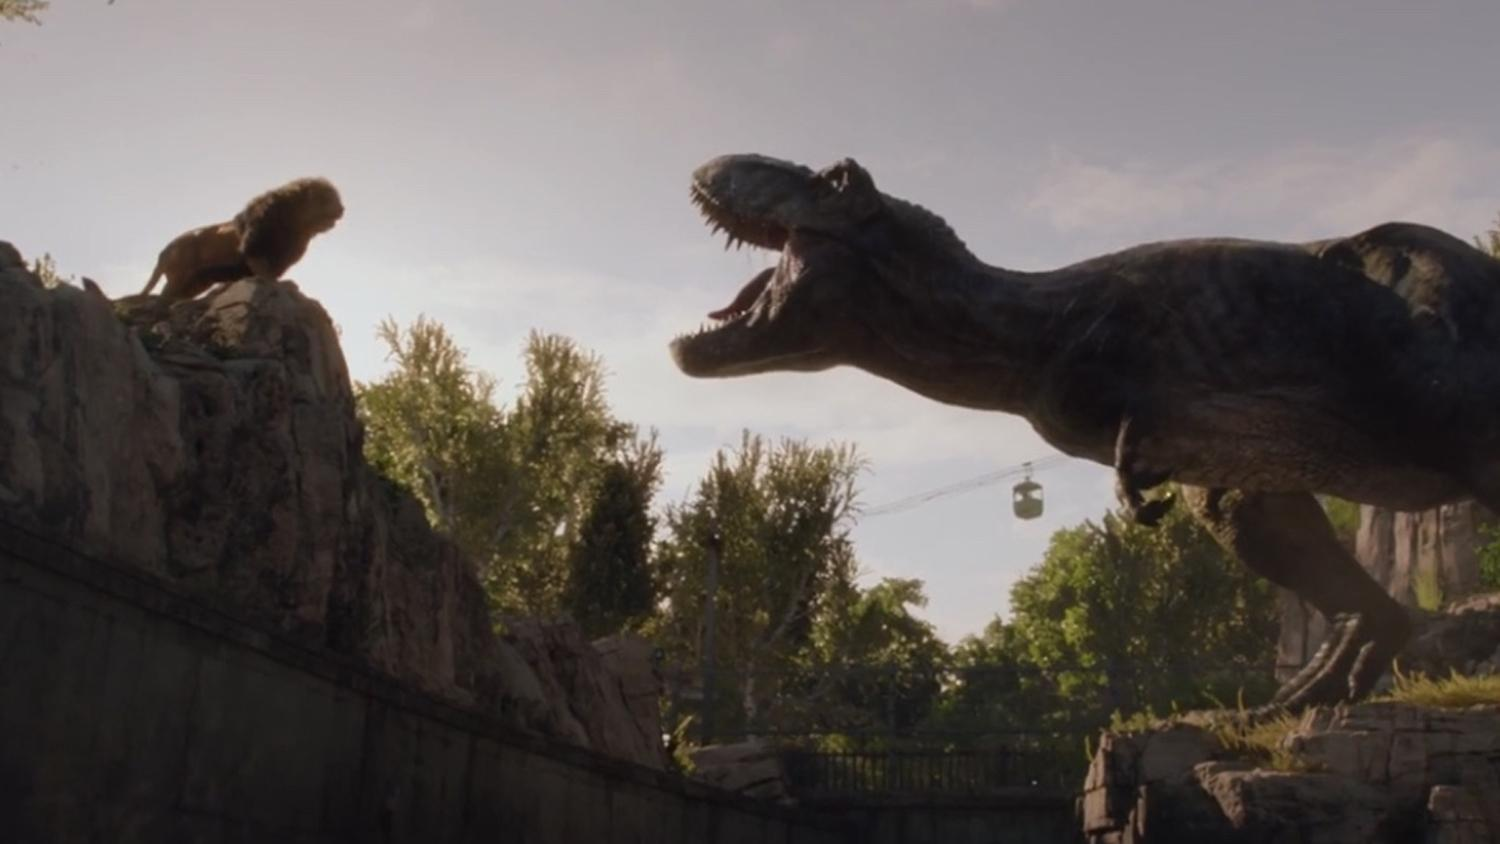 Pictures of new dinosaurs in jurassic world movie